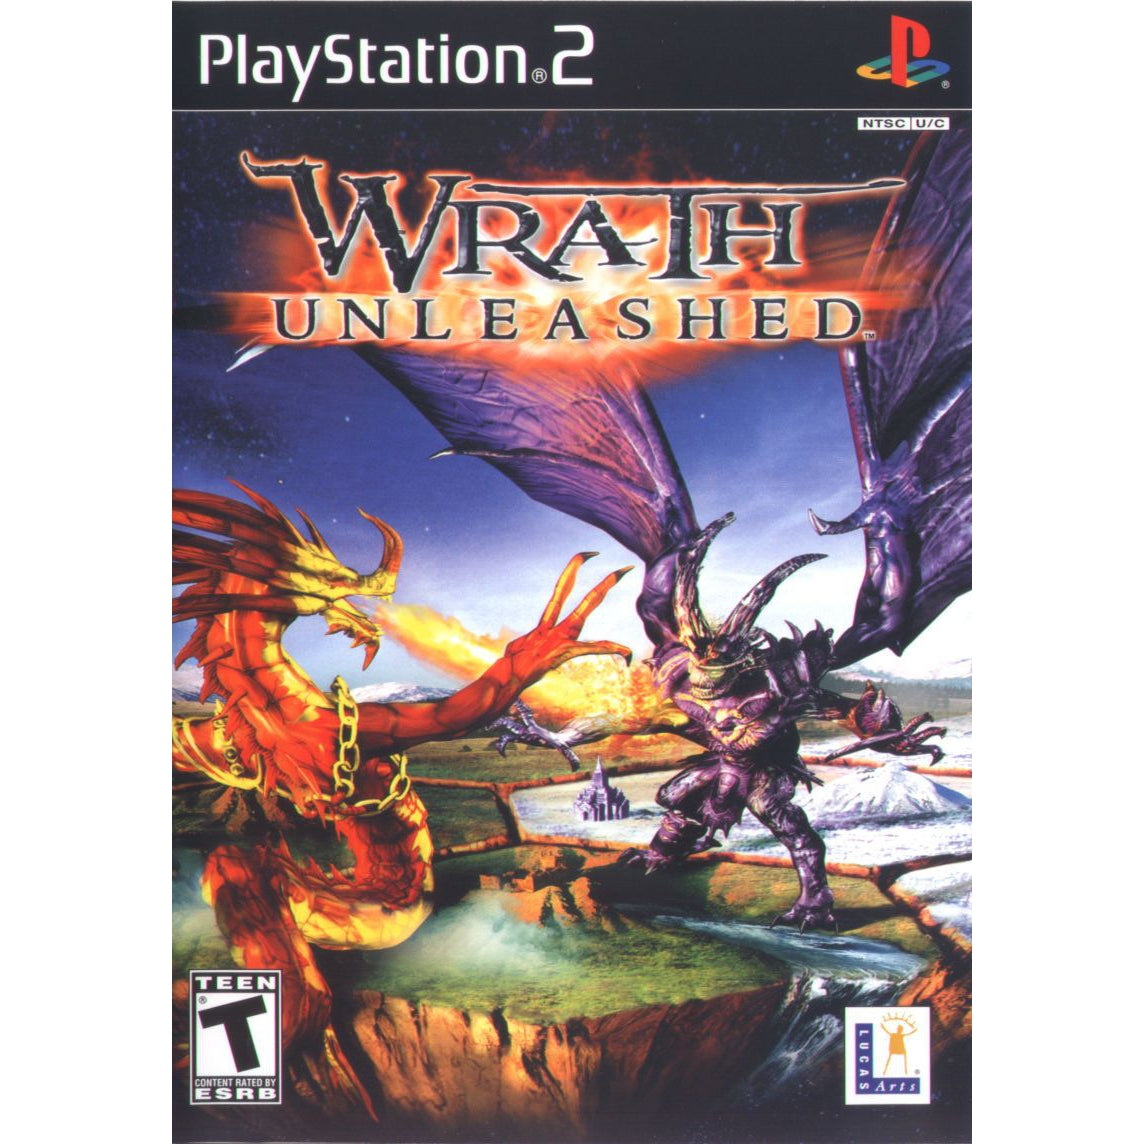 Wrath Unleashed - PlayStation 2 (PS2) Game Complete - YourGamingShop.com - Buy, Sell, Trade Video Games Online. 120 Day Warranty. Satisfaction Guaranteed.